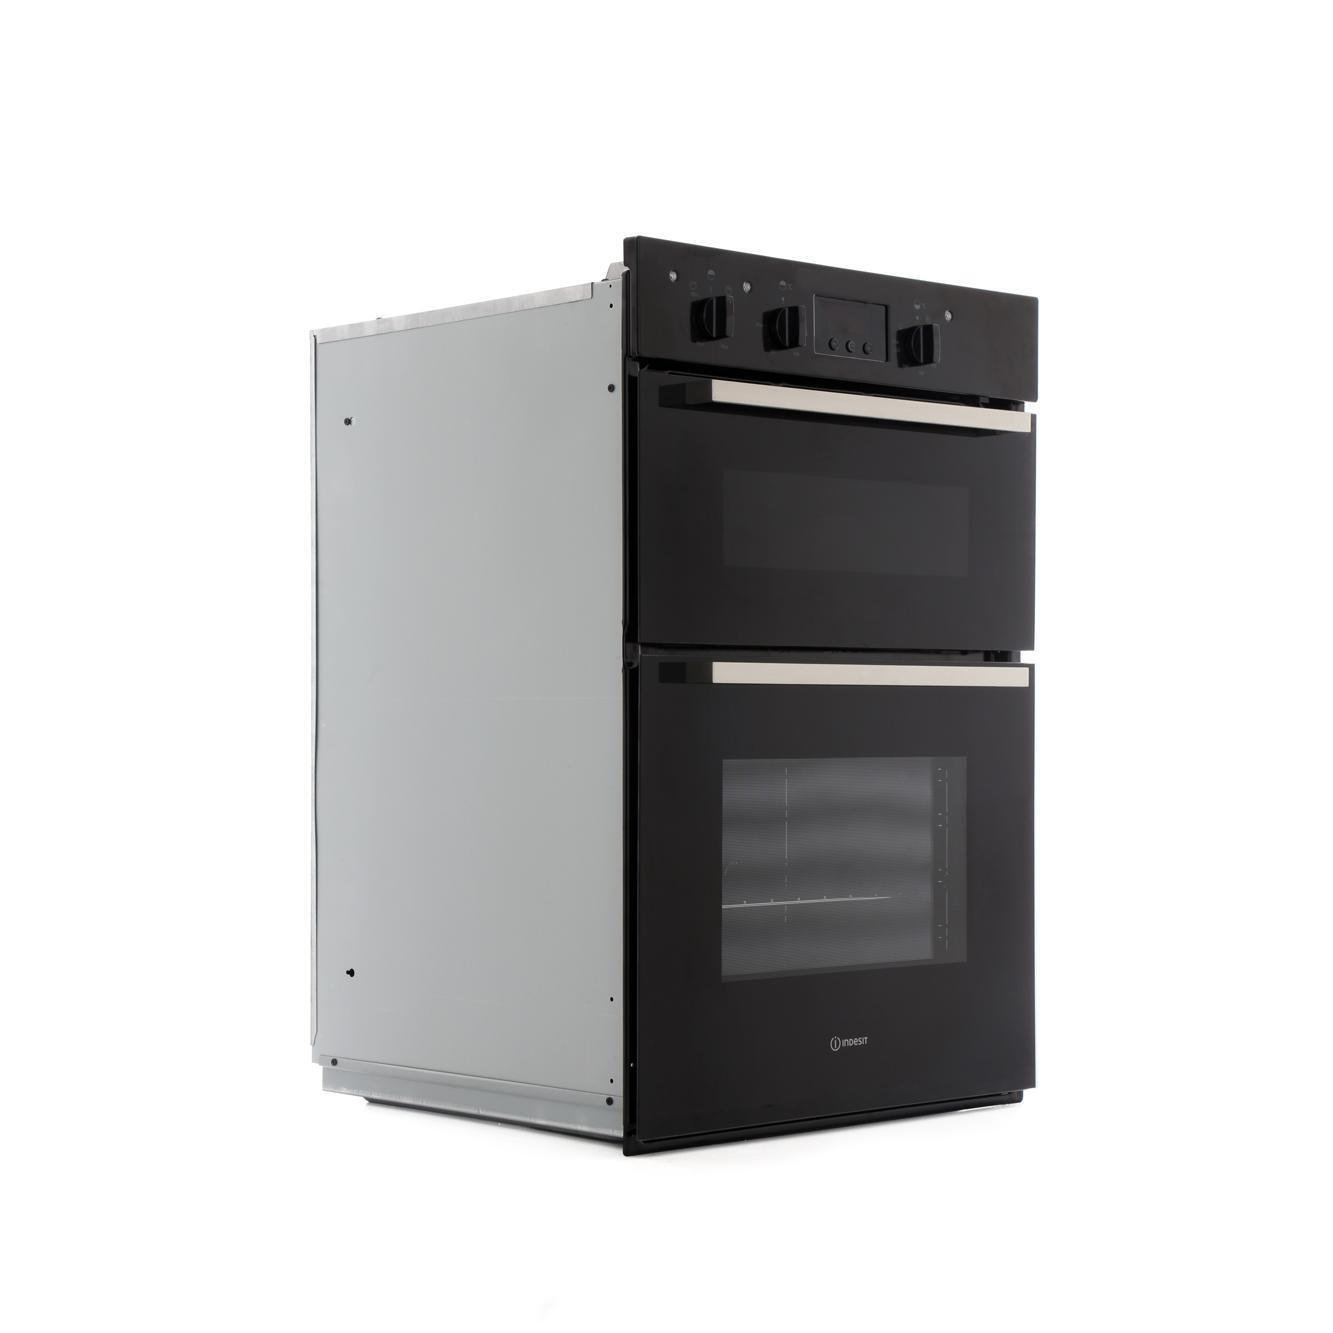 buy indesit idd6340bl double built in electric oven. Black Bedroom Furniture Sets. Home Design Ideas